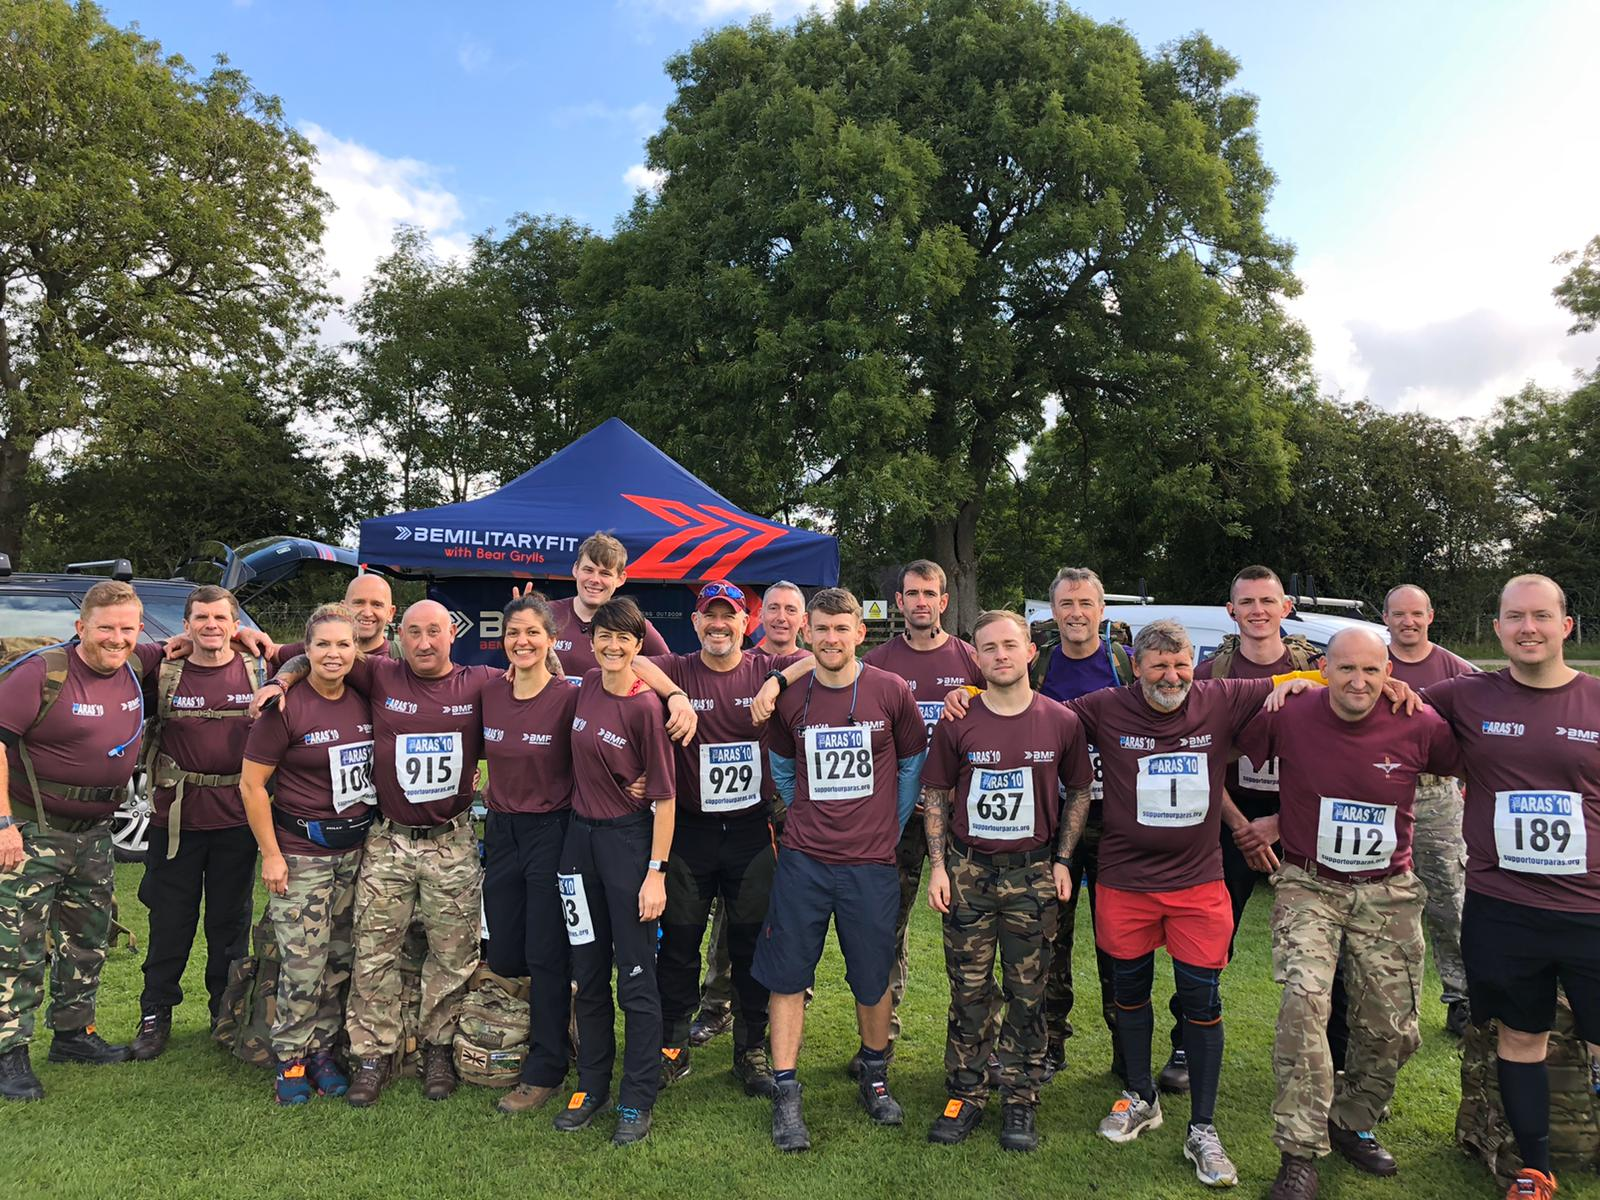 PARAS'10 - THE ULTIMATE 10 Mile Endurance Race - 7th September 2019 - Catterick